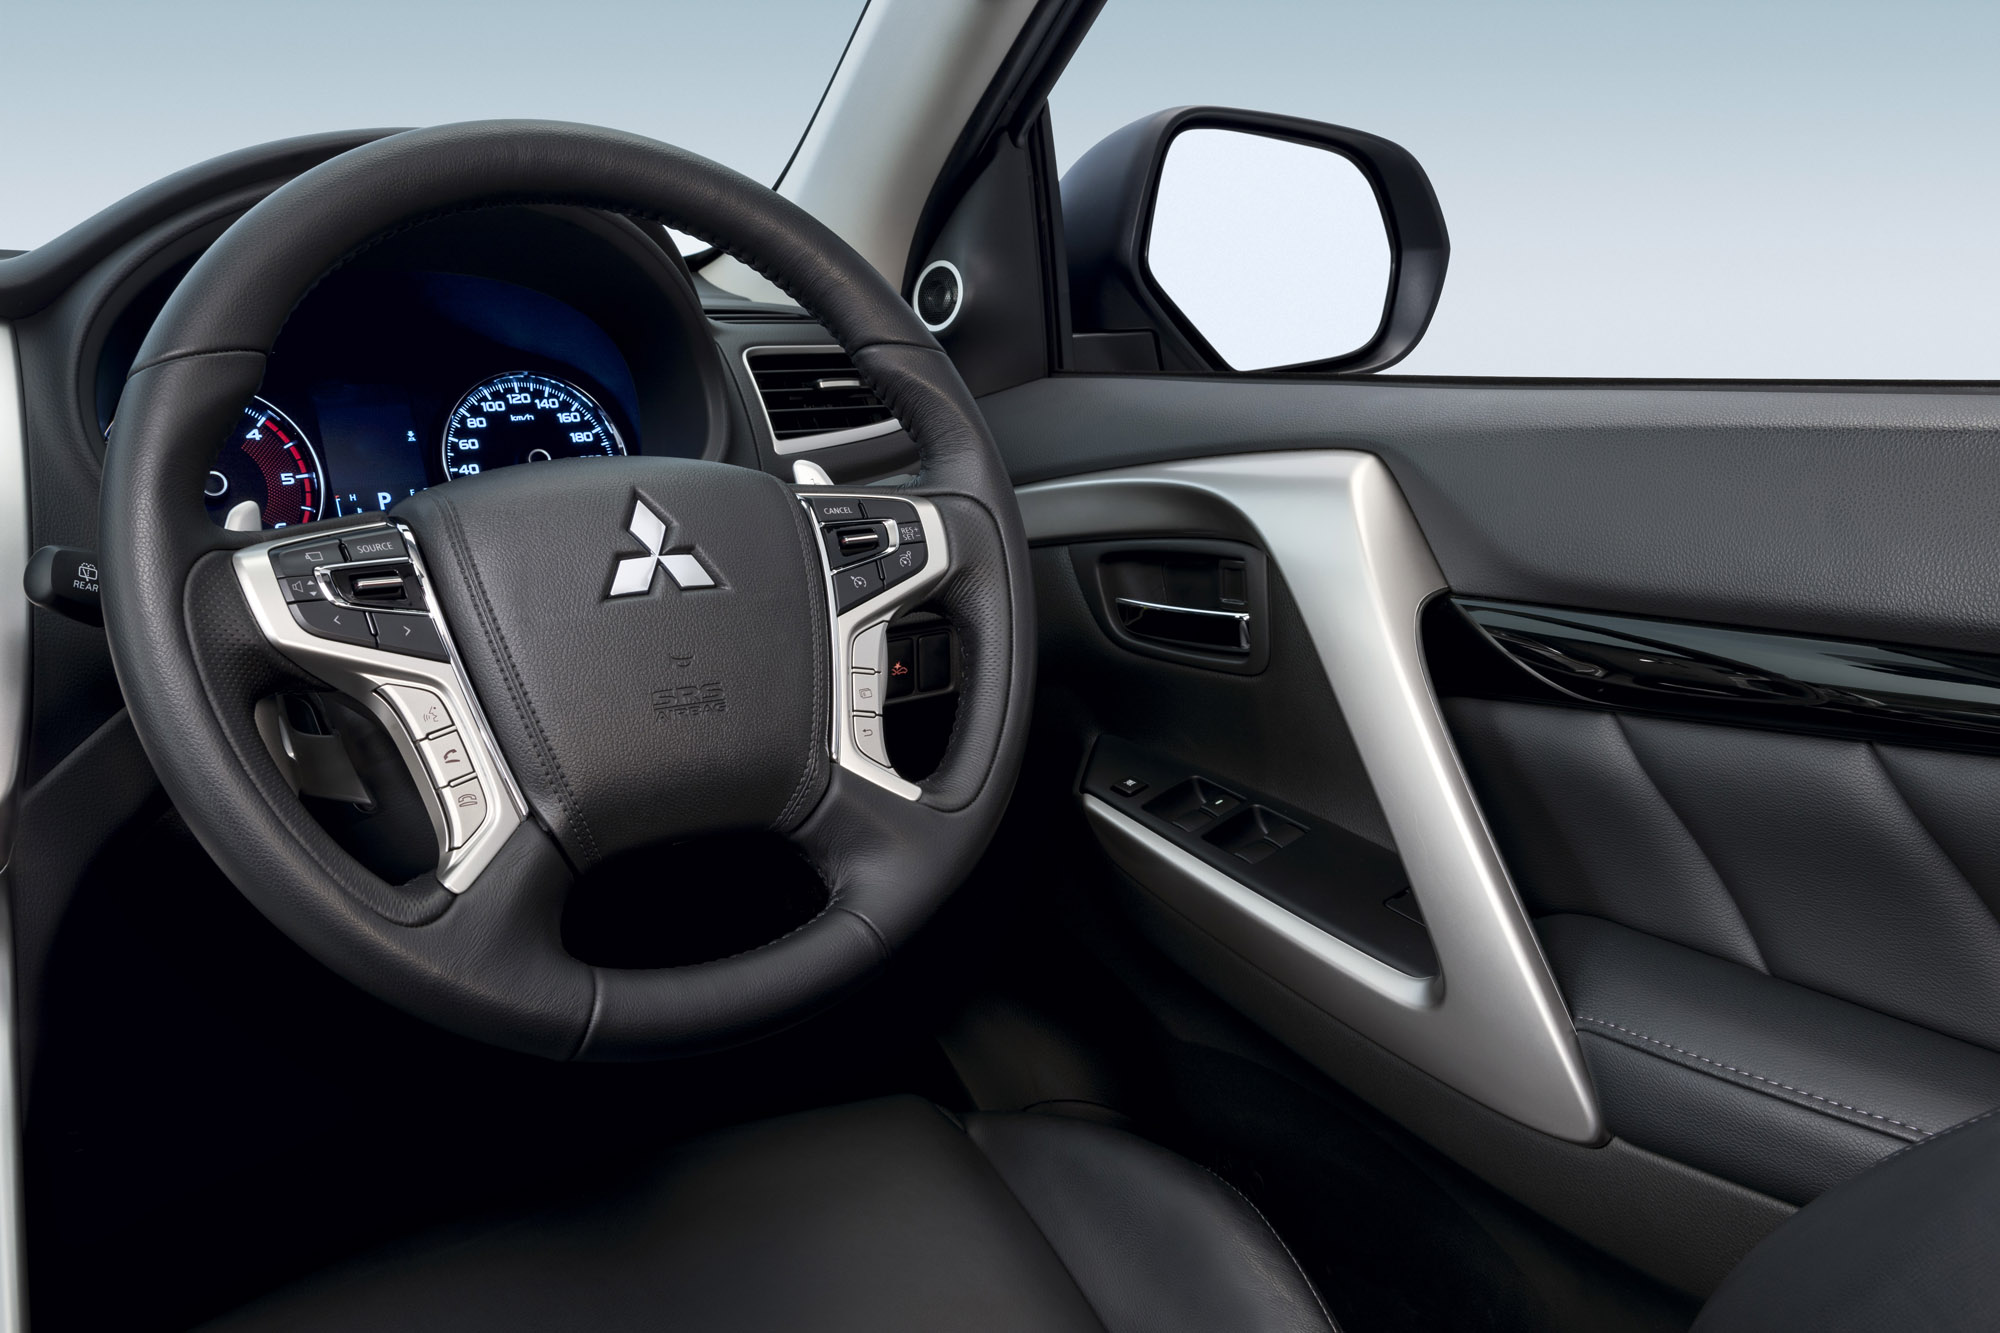 2016 Mitsubishi Pajero Sport Cockpit (Photo 14 of 23)